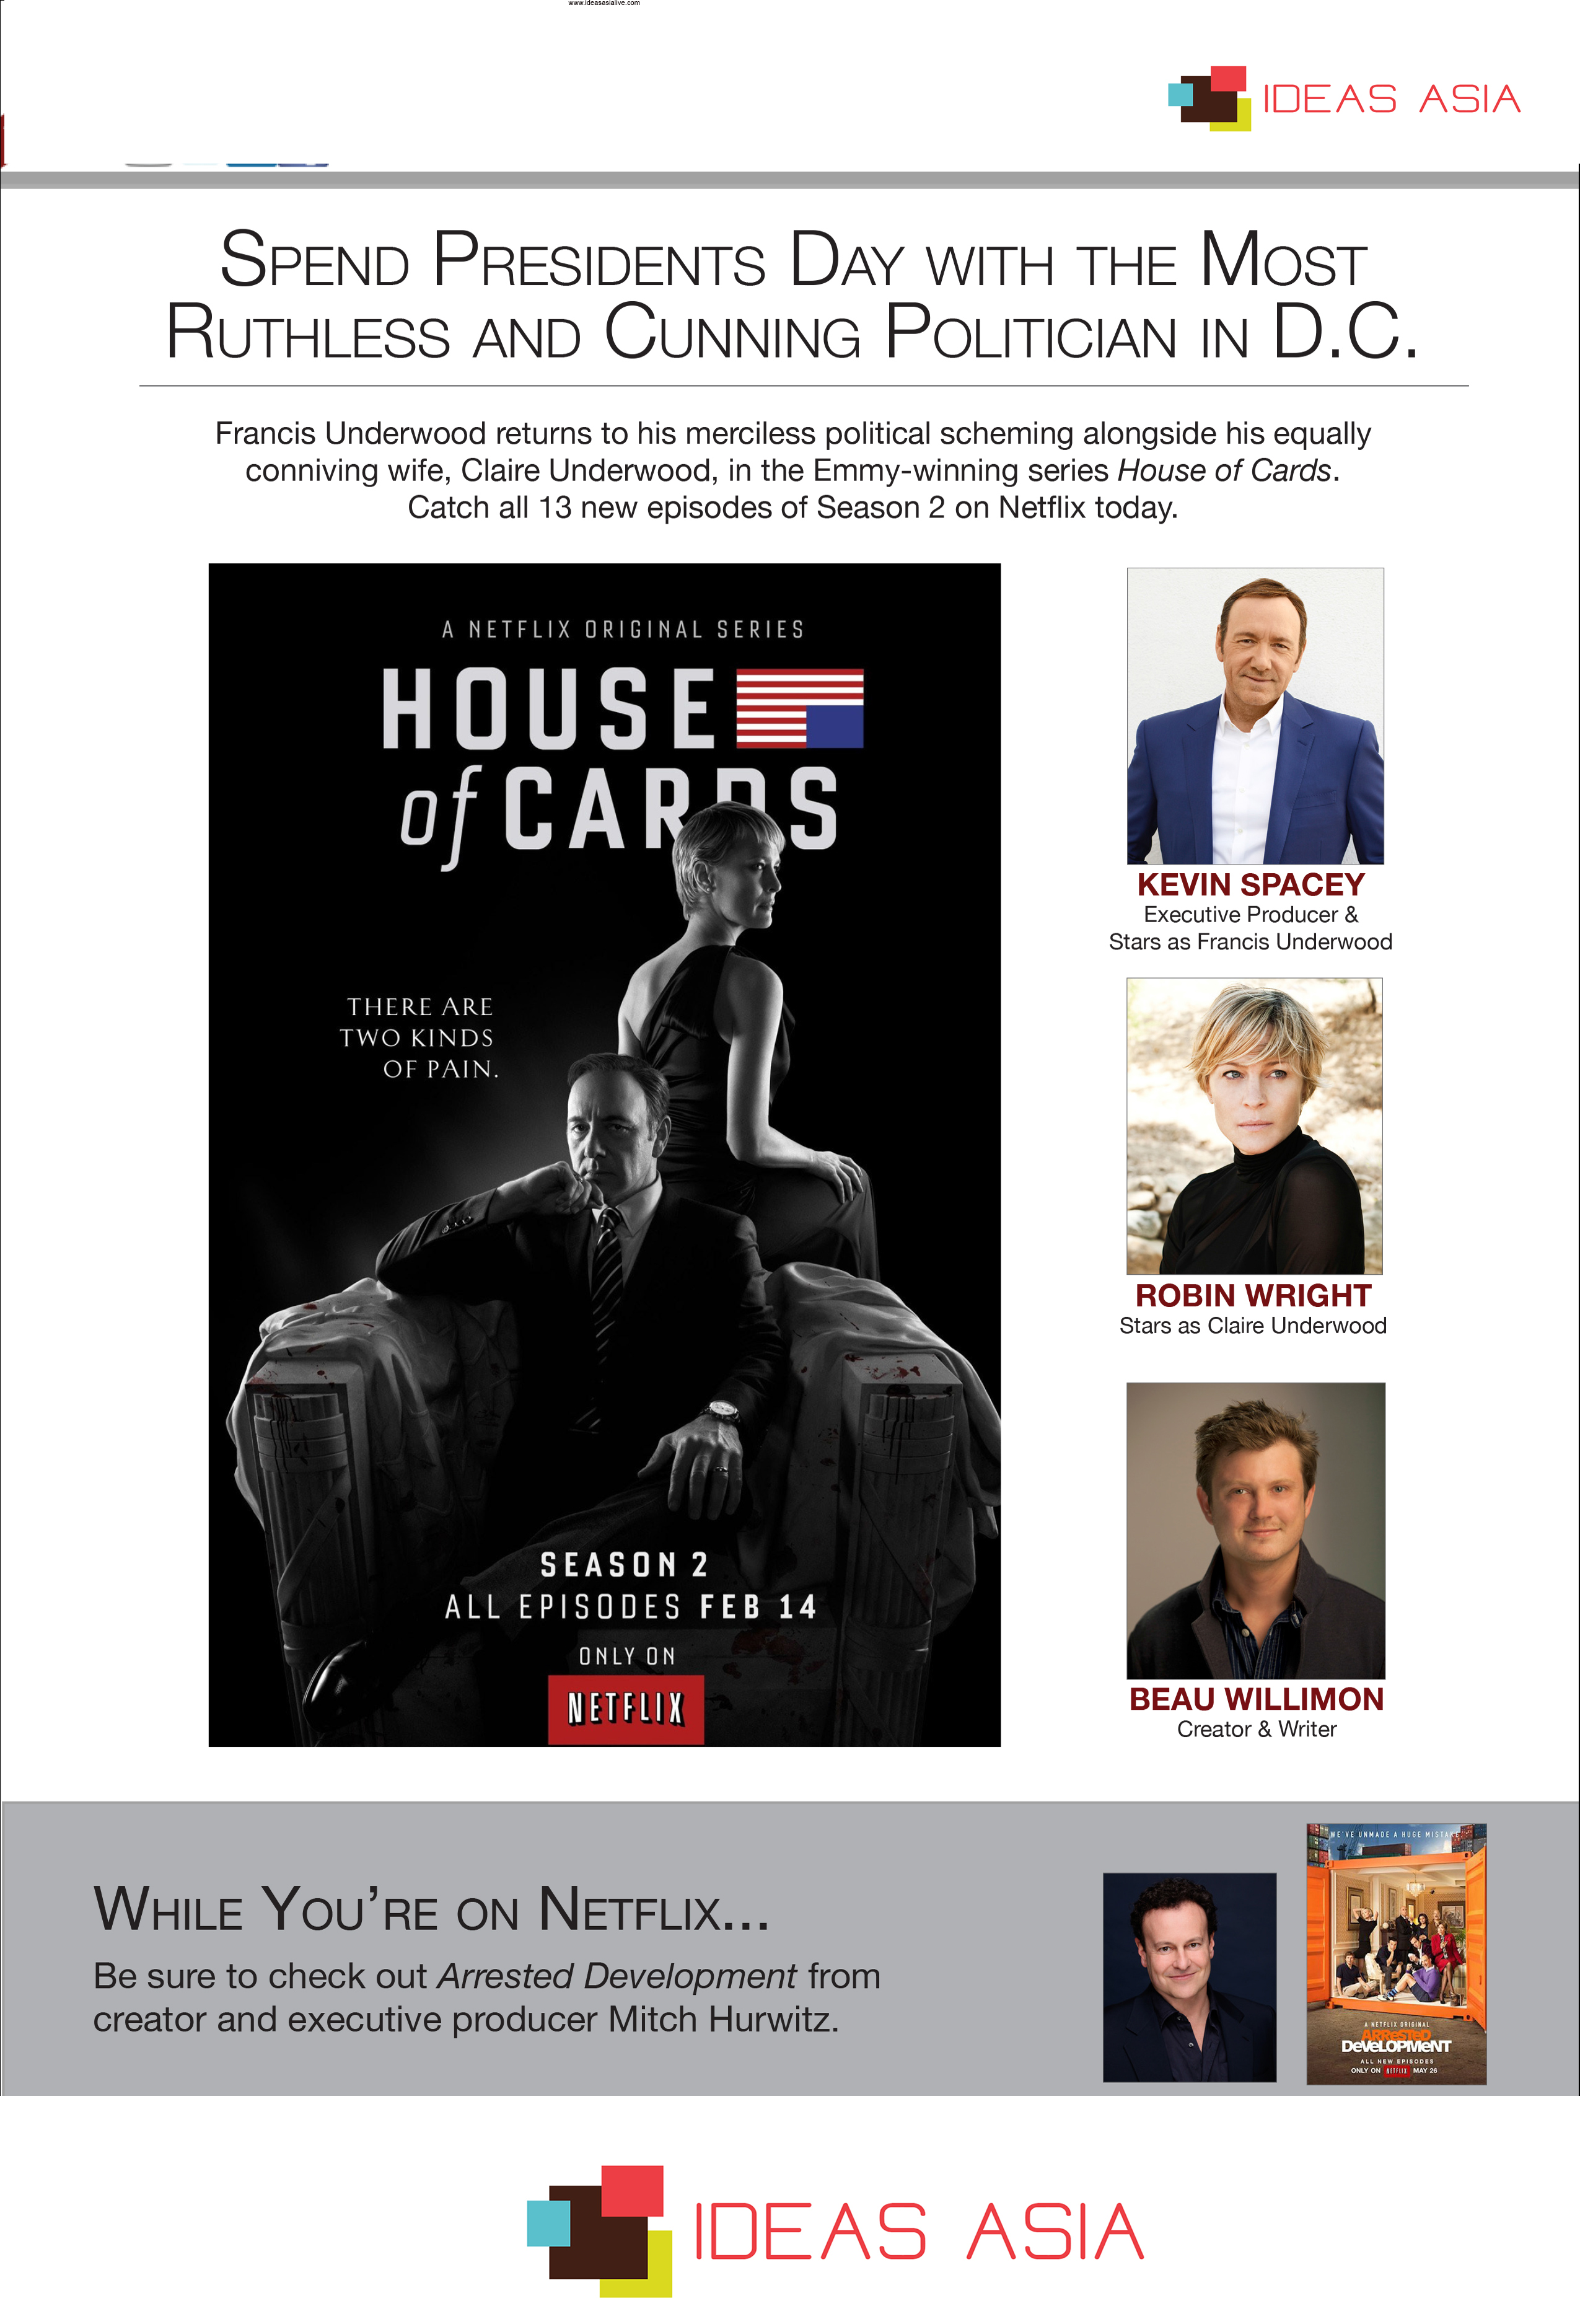 House-of-Cards-IDEAS ASIA